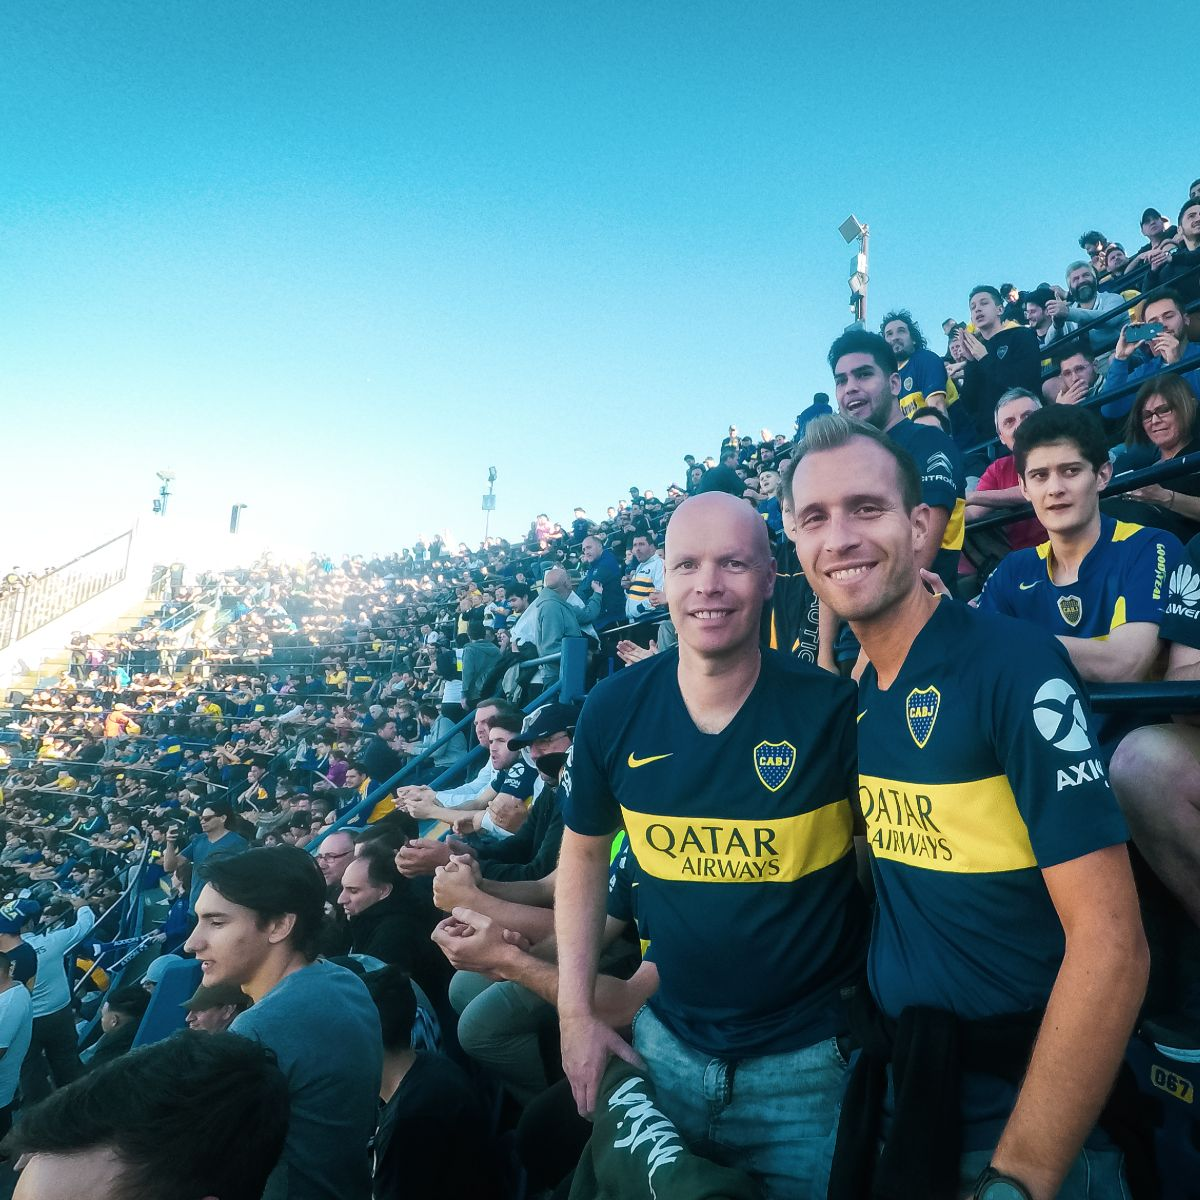 Day 3 - Superclasico: Boca Juniors x River Plate!